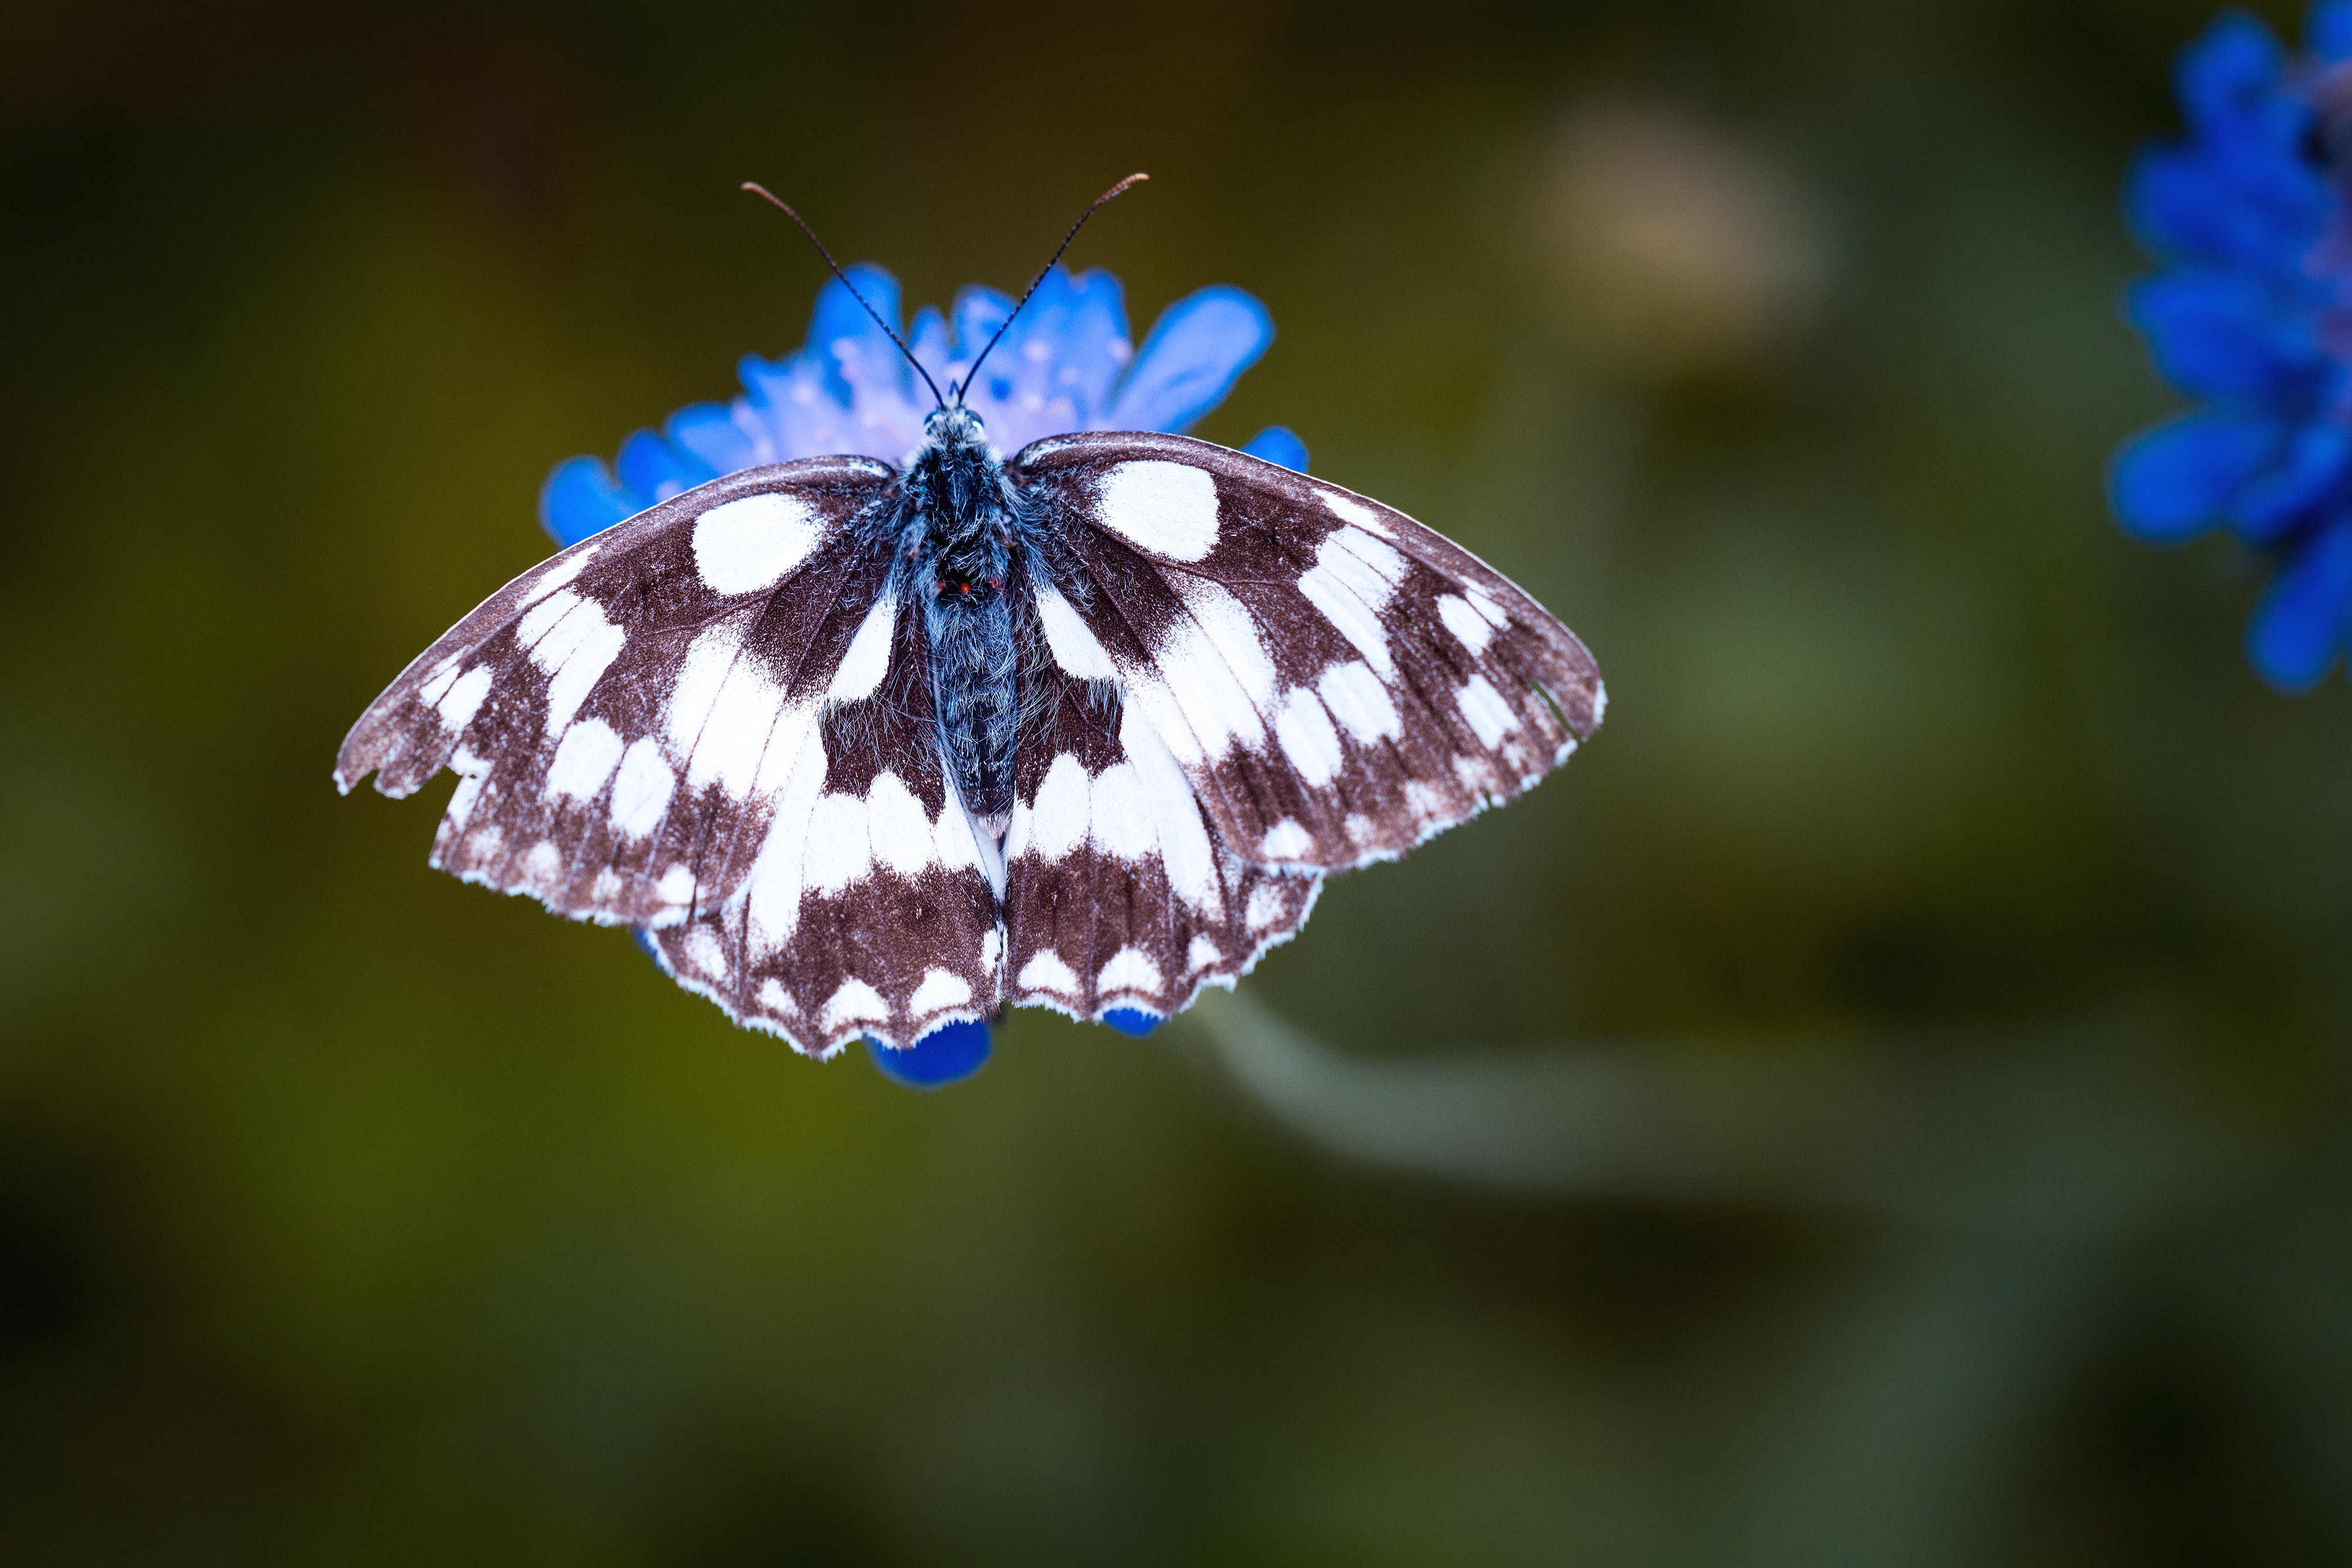 Magpie Moth Perched on Blue Flower in Tilt Shift Lens